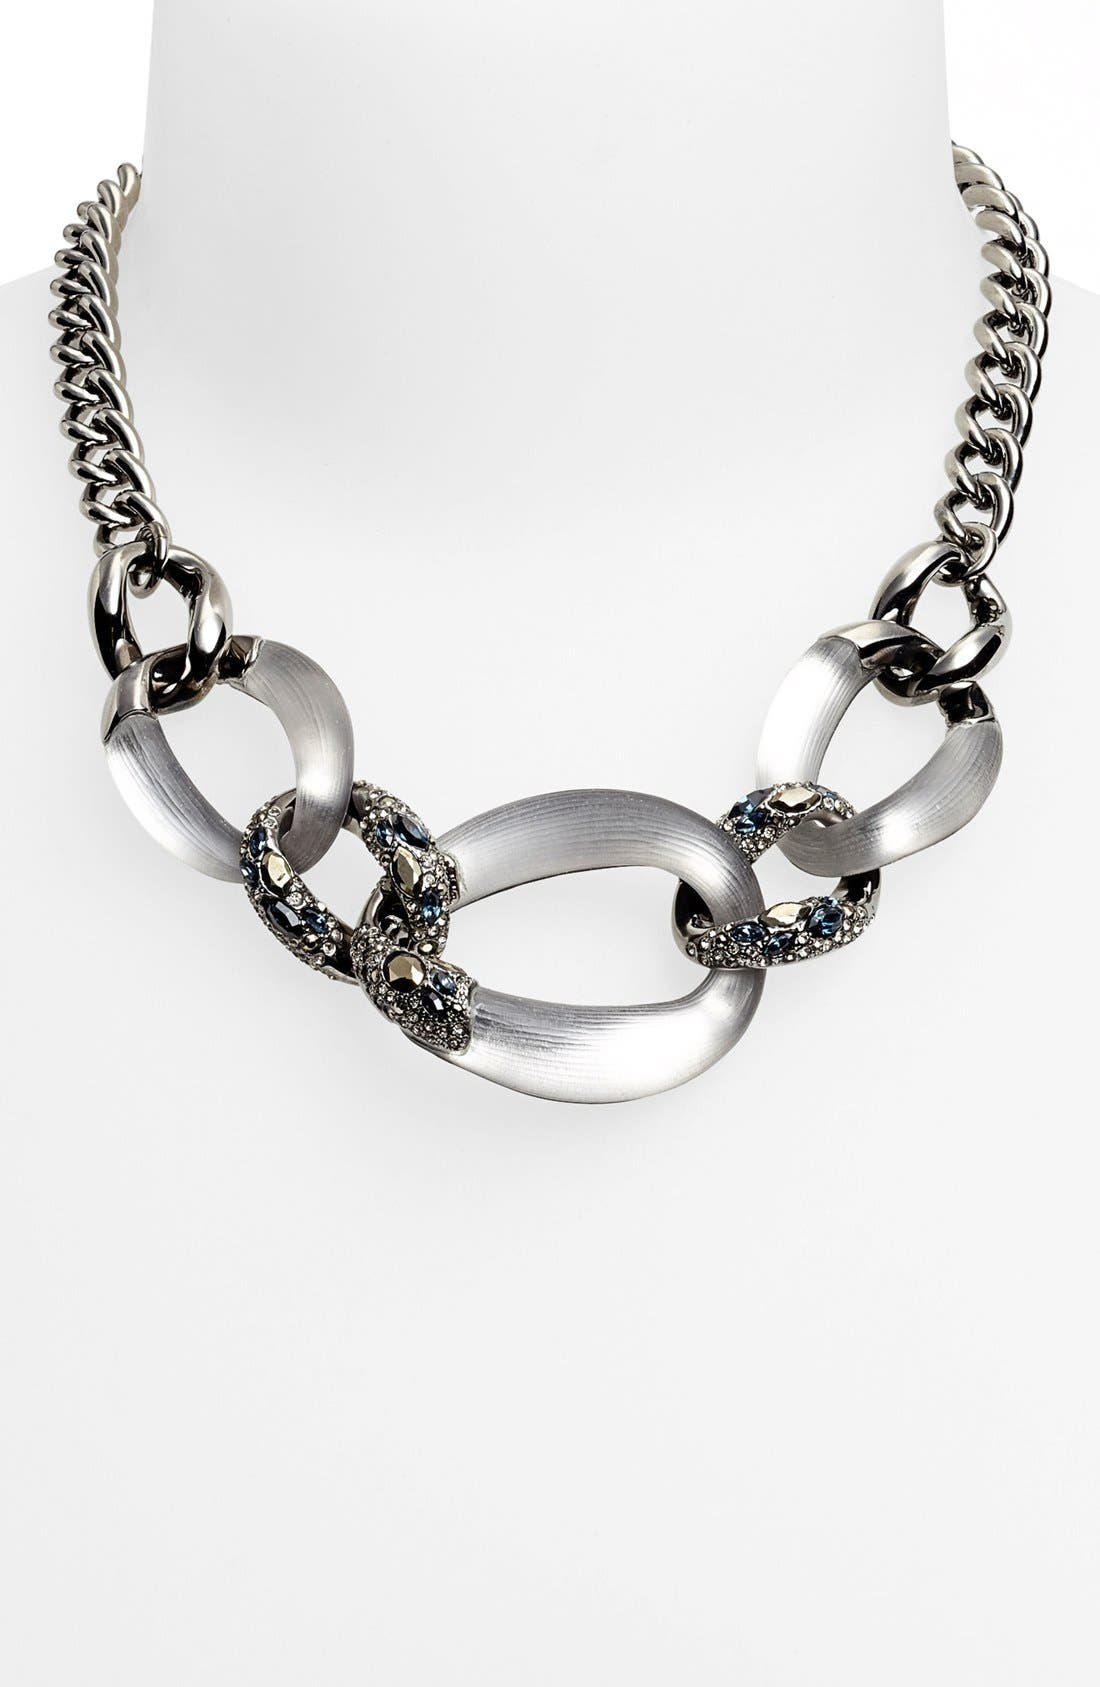 Main Image - Alexis Bittar 'Lucite® - Neo Bohemian' Link Frontal Necklace